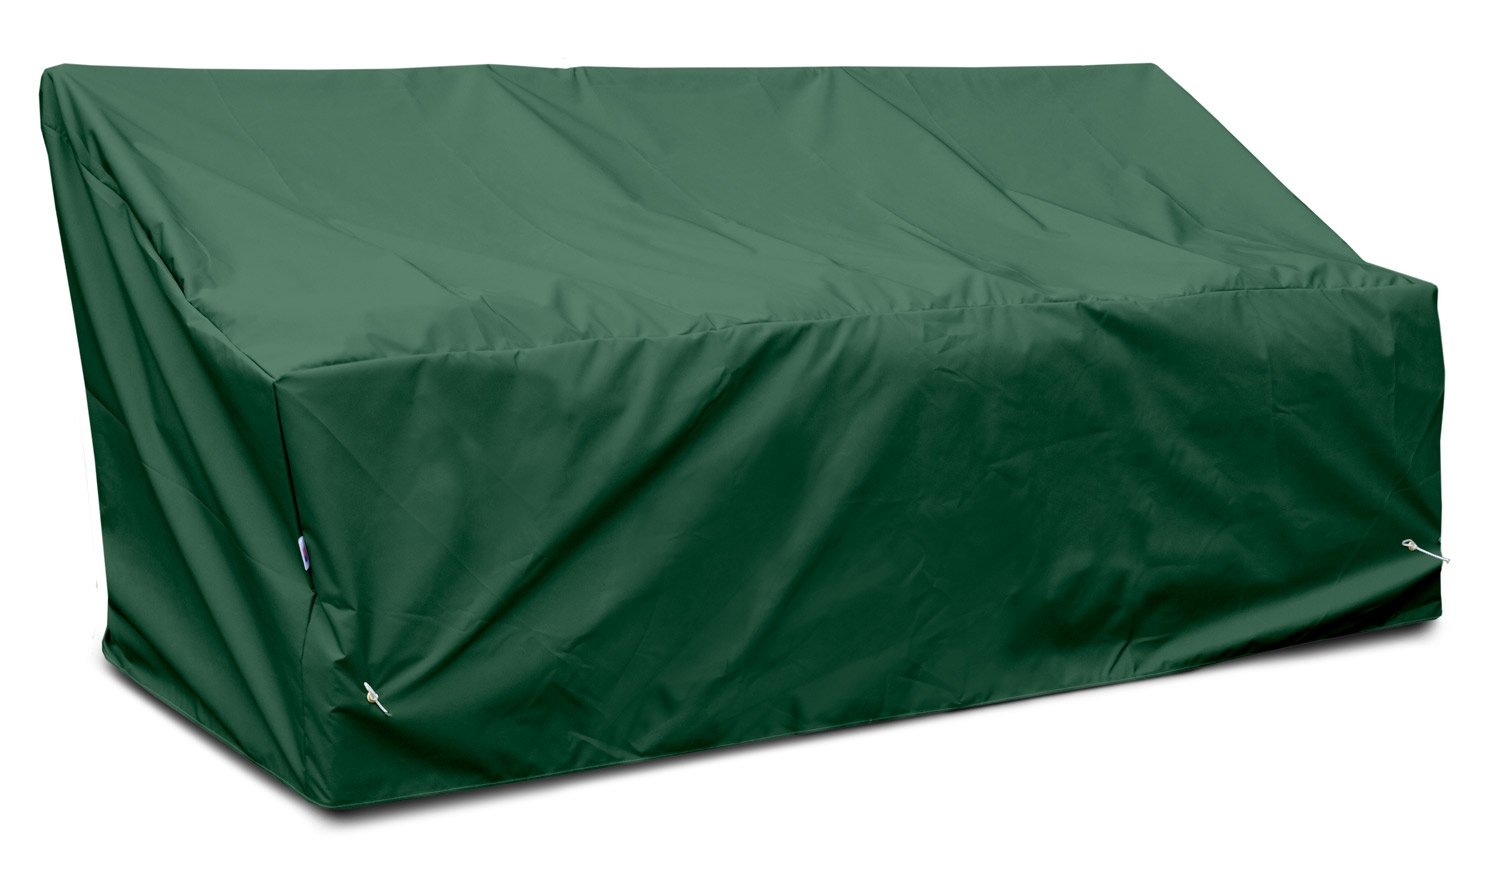 KoverRoos Weathermax 66450 Deep 3-Seat Glider/Lounge Cover, 89-Inch Width by 36-Inch Diameter by 33-Inch Height, Forest Green